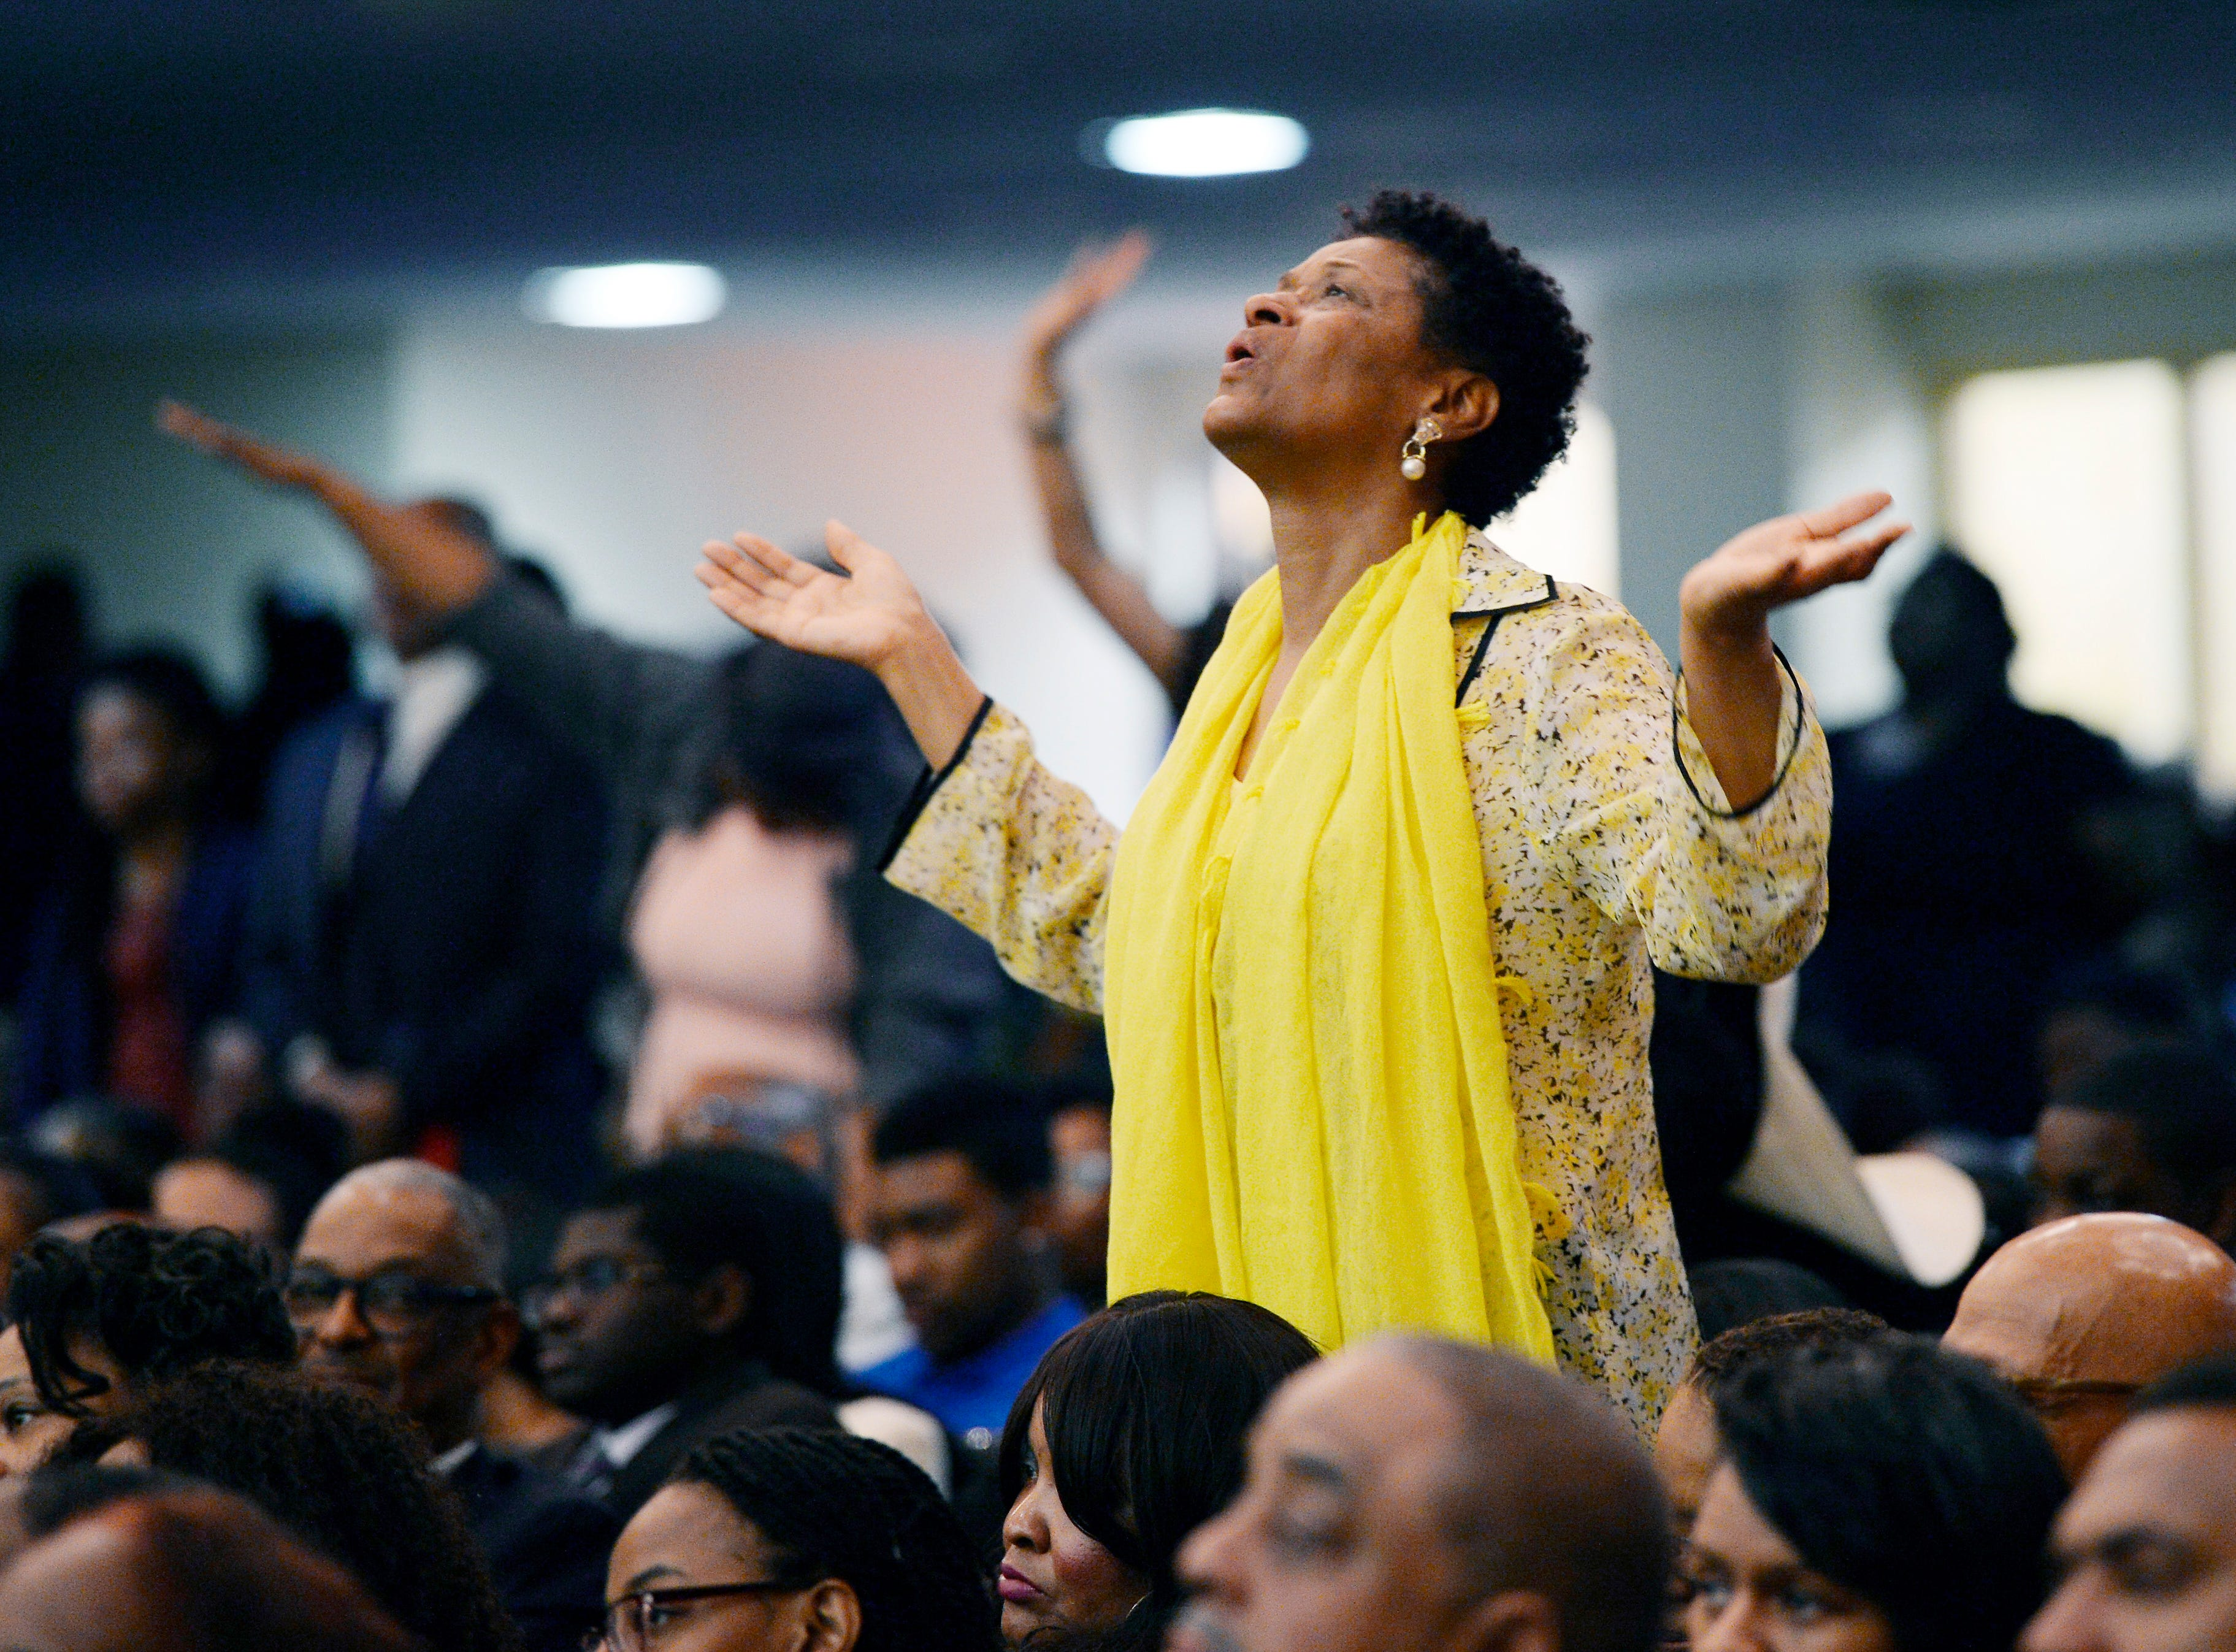 Deborah Sherrill of Detroit stands during the praise and worship section of the Easter service at Perfecting Church in Detroit on April 1, 2018.